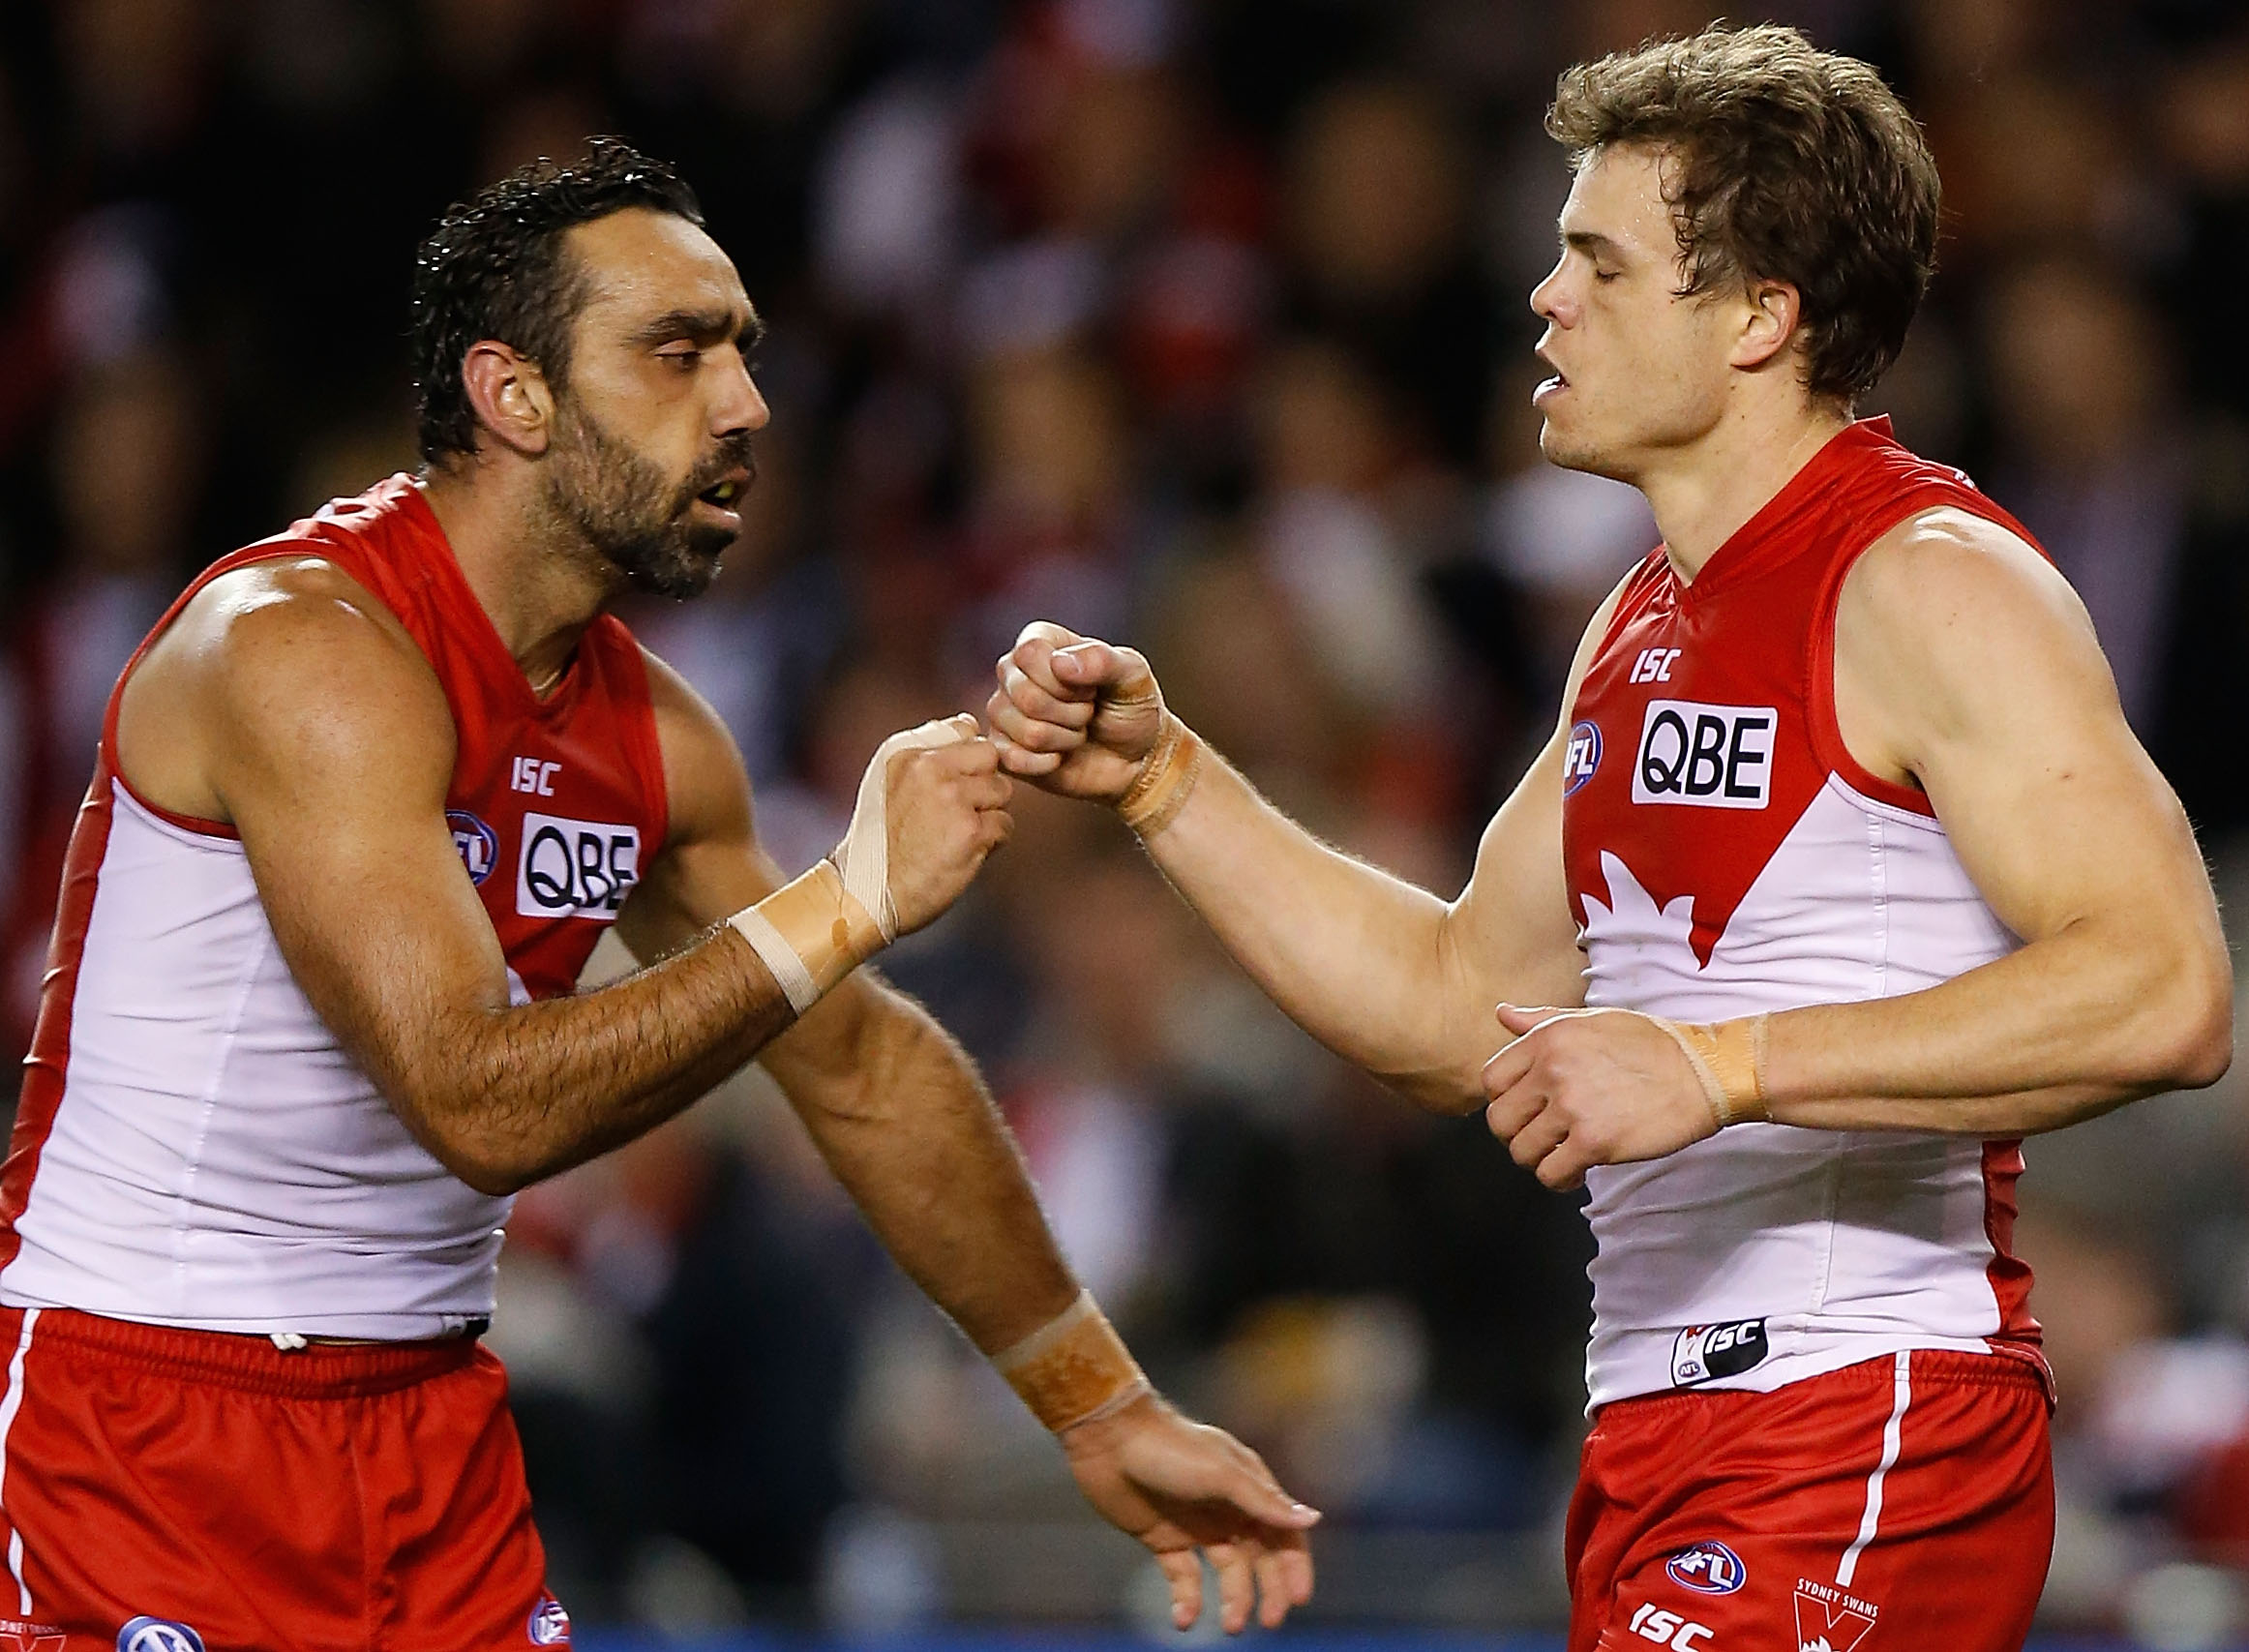 MELBOURNE, AUSTRALIA - AUGUST 30: Adam Goodes (left) and Mike Pyke of the Swans celebrate during the 2015 AFL round 22 match between the St Kilda Saints and the Sydney Swans at Etihad Stadium, Melbourne, Australia on August 30, 2015. (Photo by Michael Willson/AFL Media)